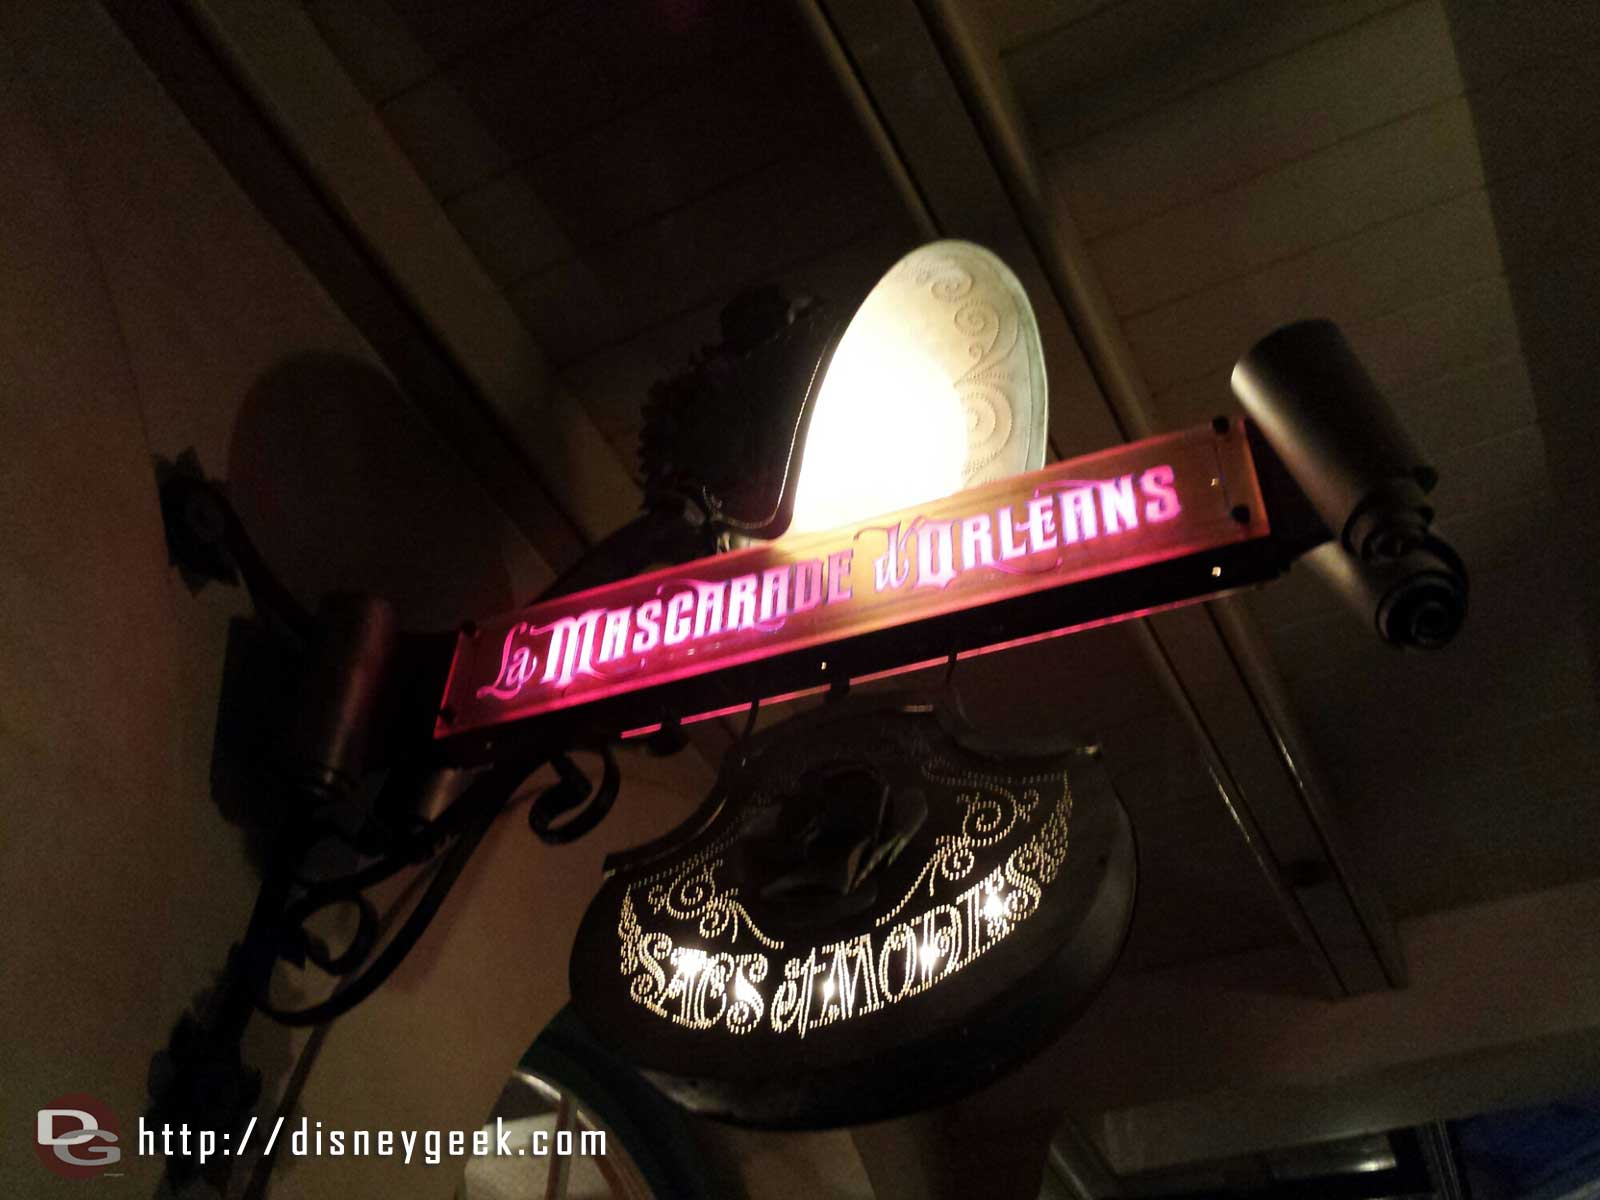 The new Le Mascarade d Orleans is open